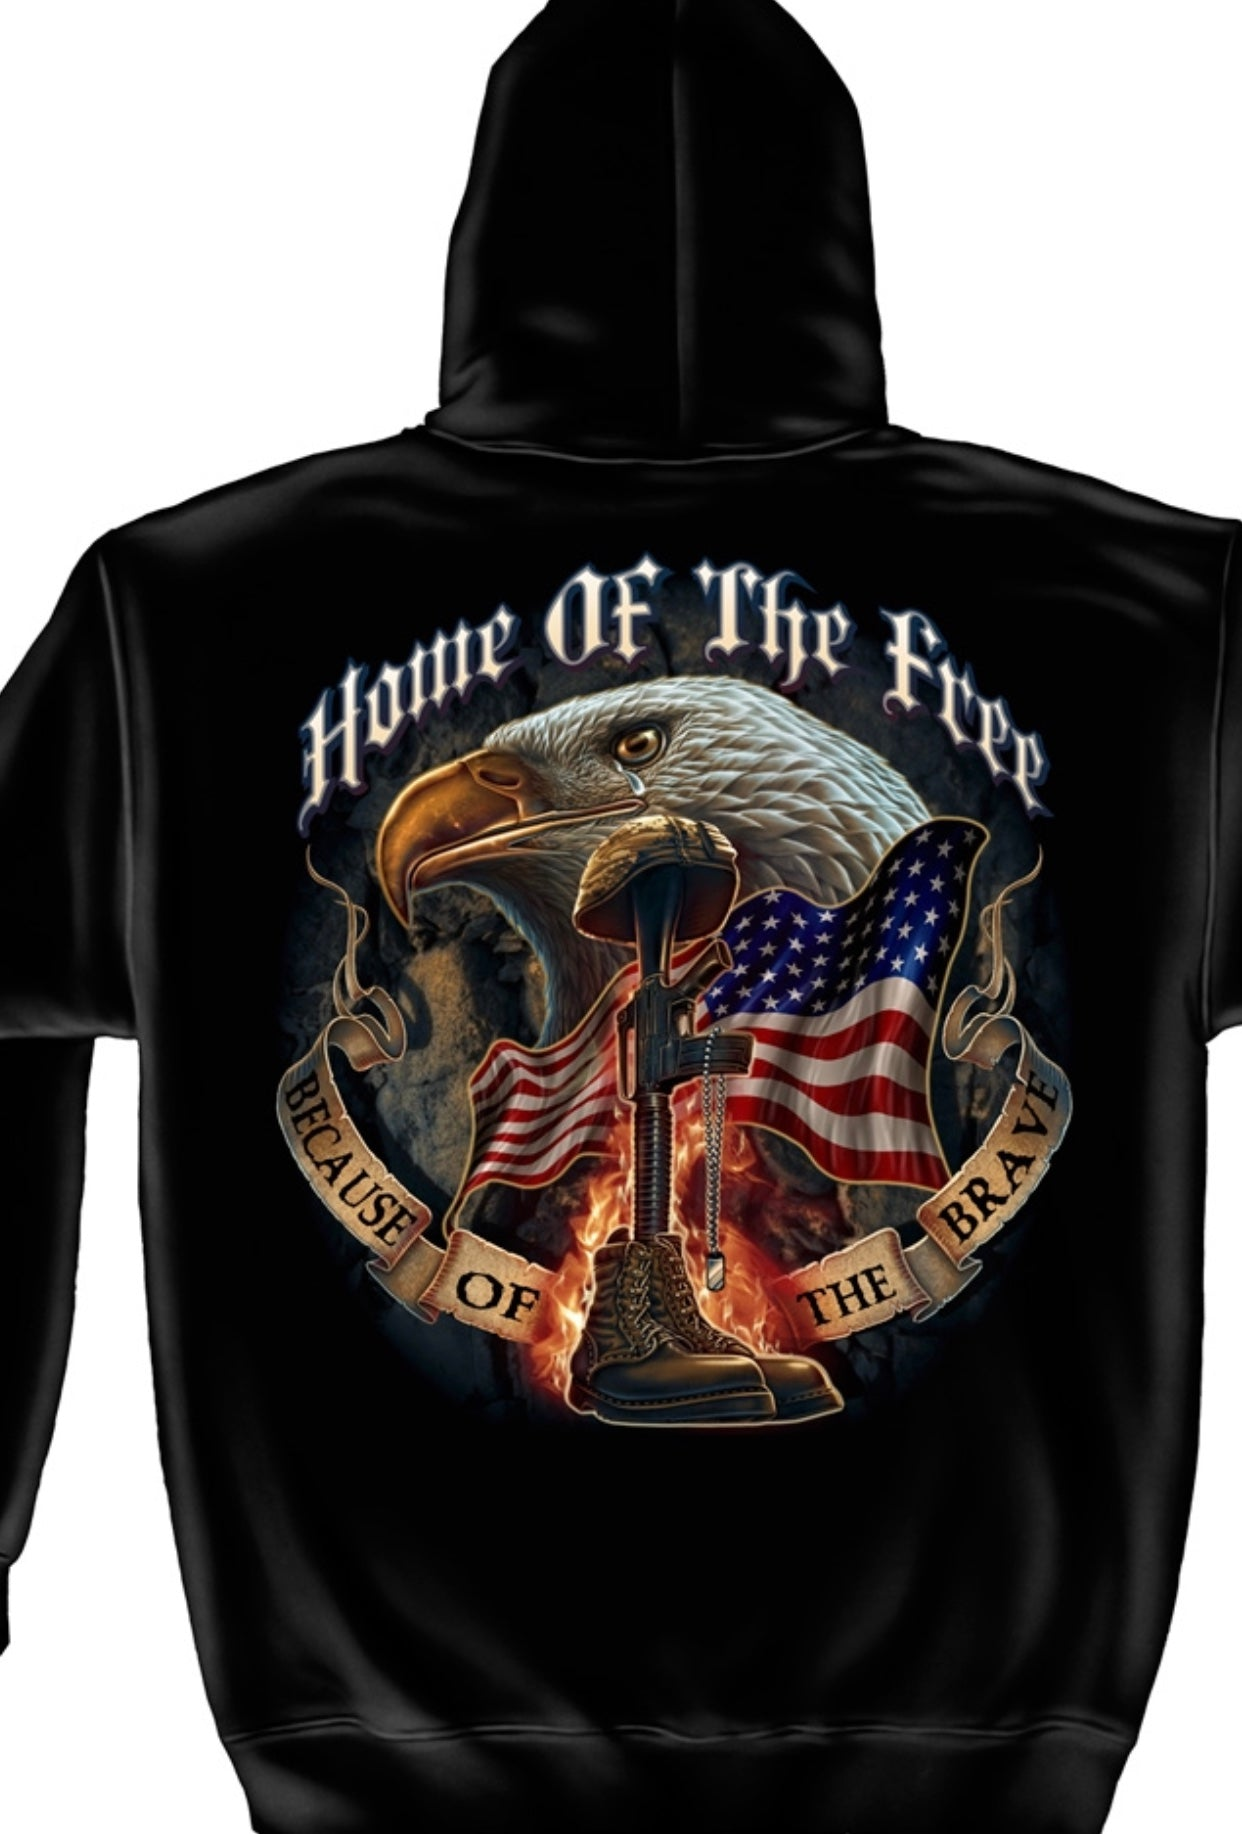 Home Of The Free Eagle Sweatshirt - The Wall Kids, Inc.